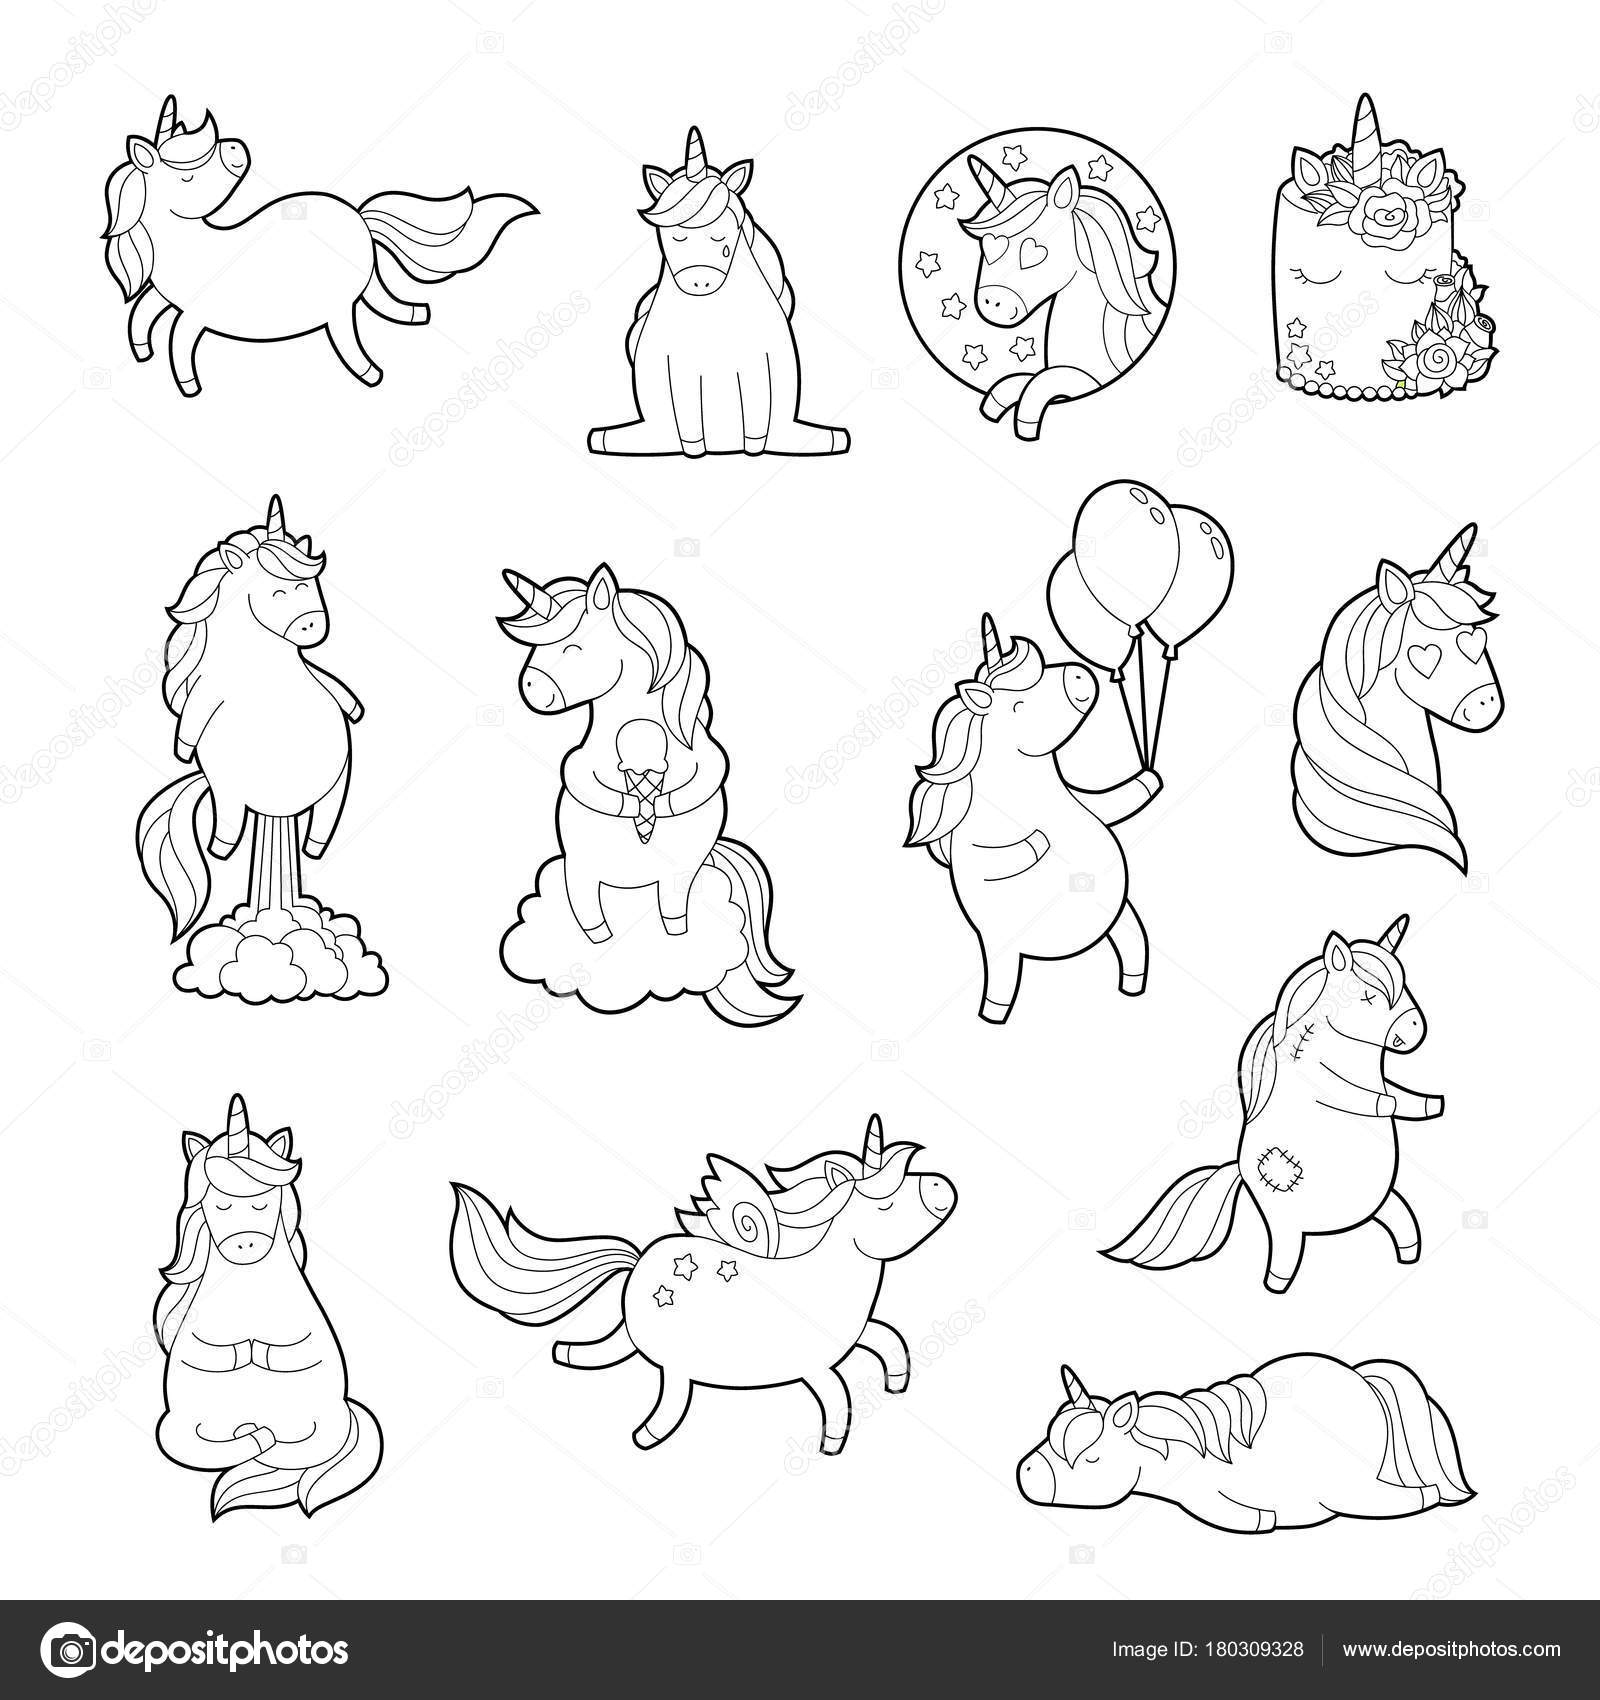 - Pin Up Coloring Pages Magic Unicorn For Adult Coloring Pages